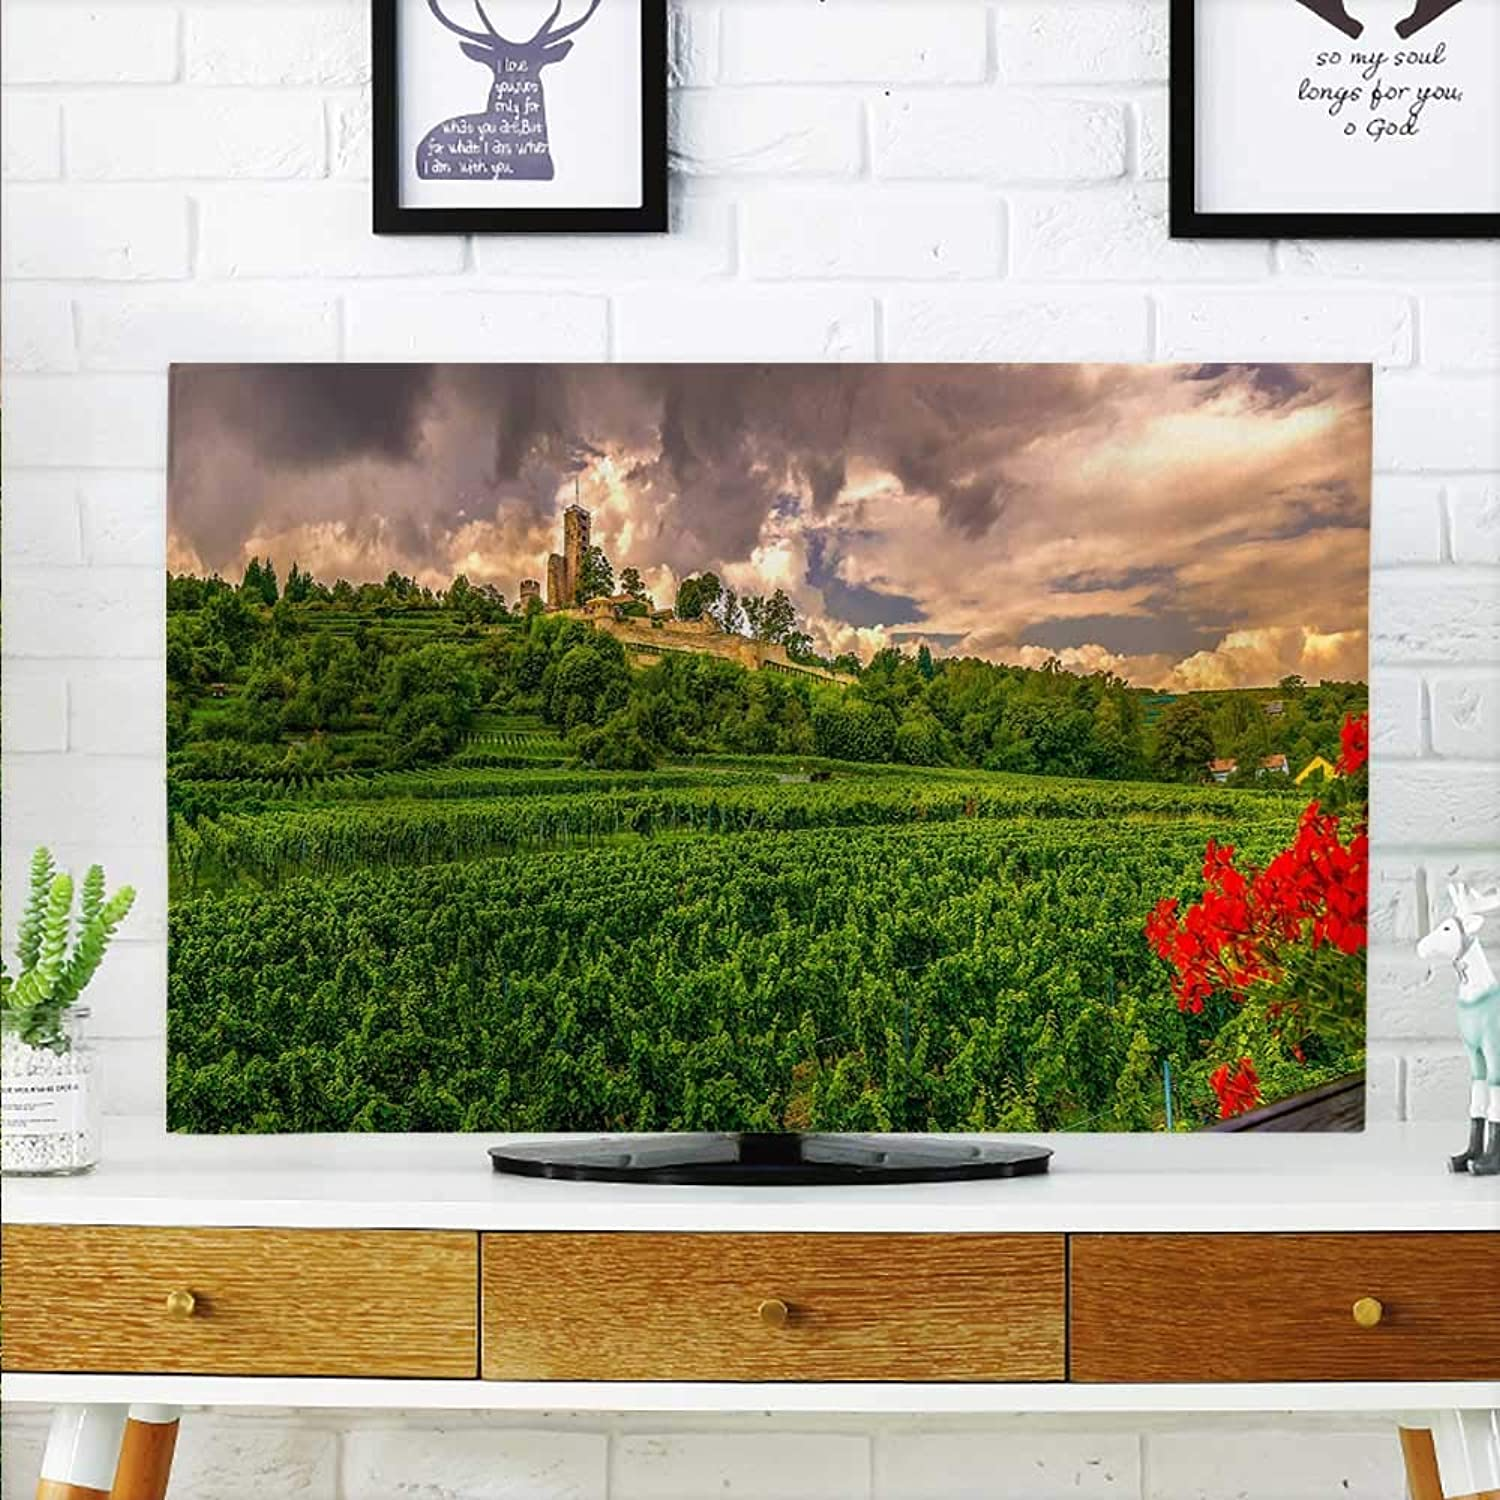 Aolankaili Predect Your TV Home Guard Predect Your TV W32 x H51 INCH TV 55